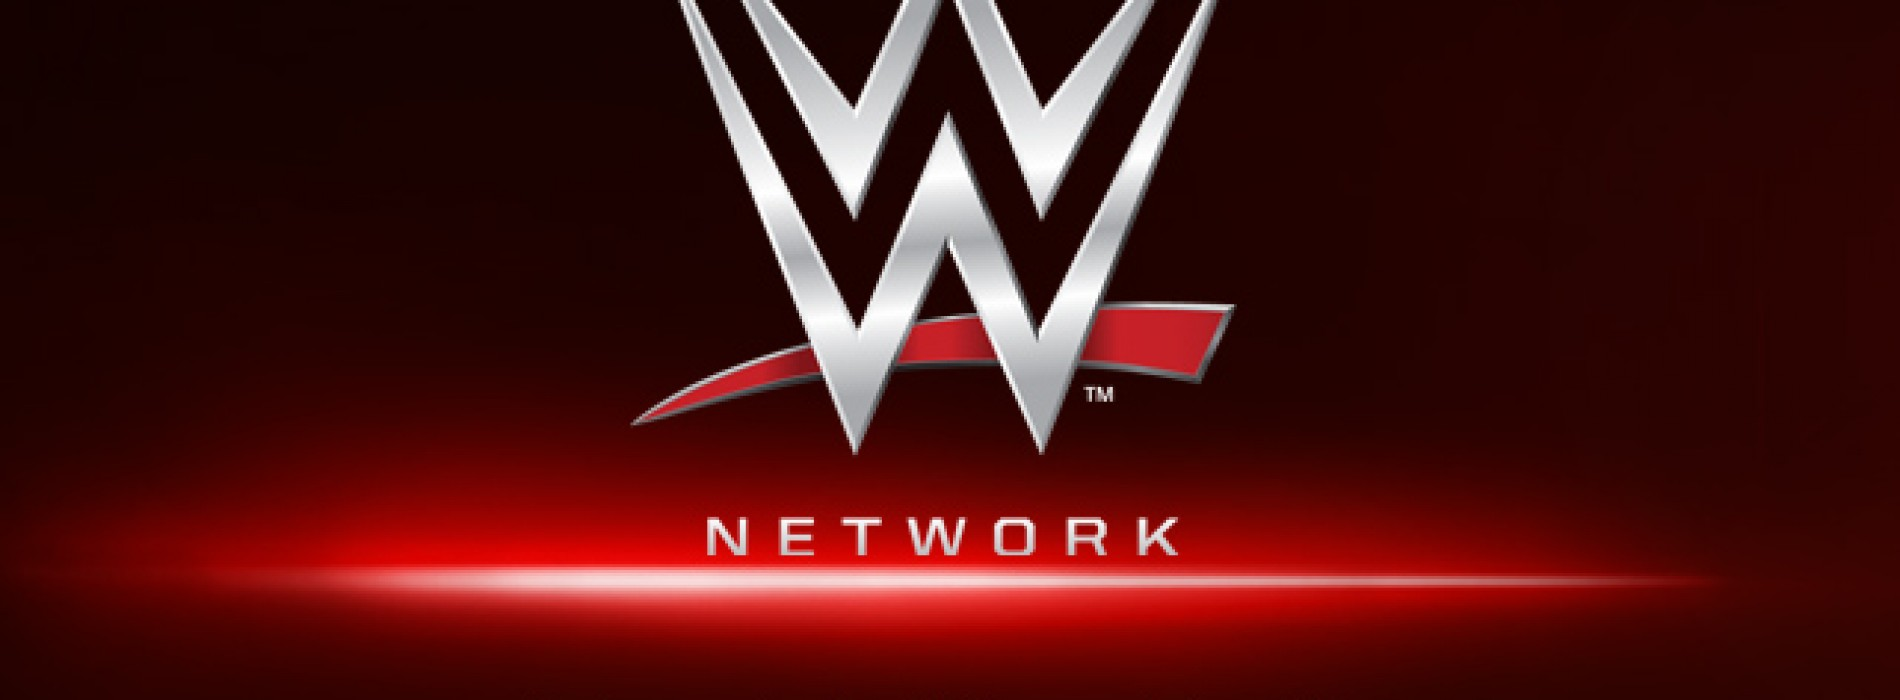 WWE NETWORK launching in February, will have Android experience